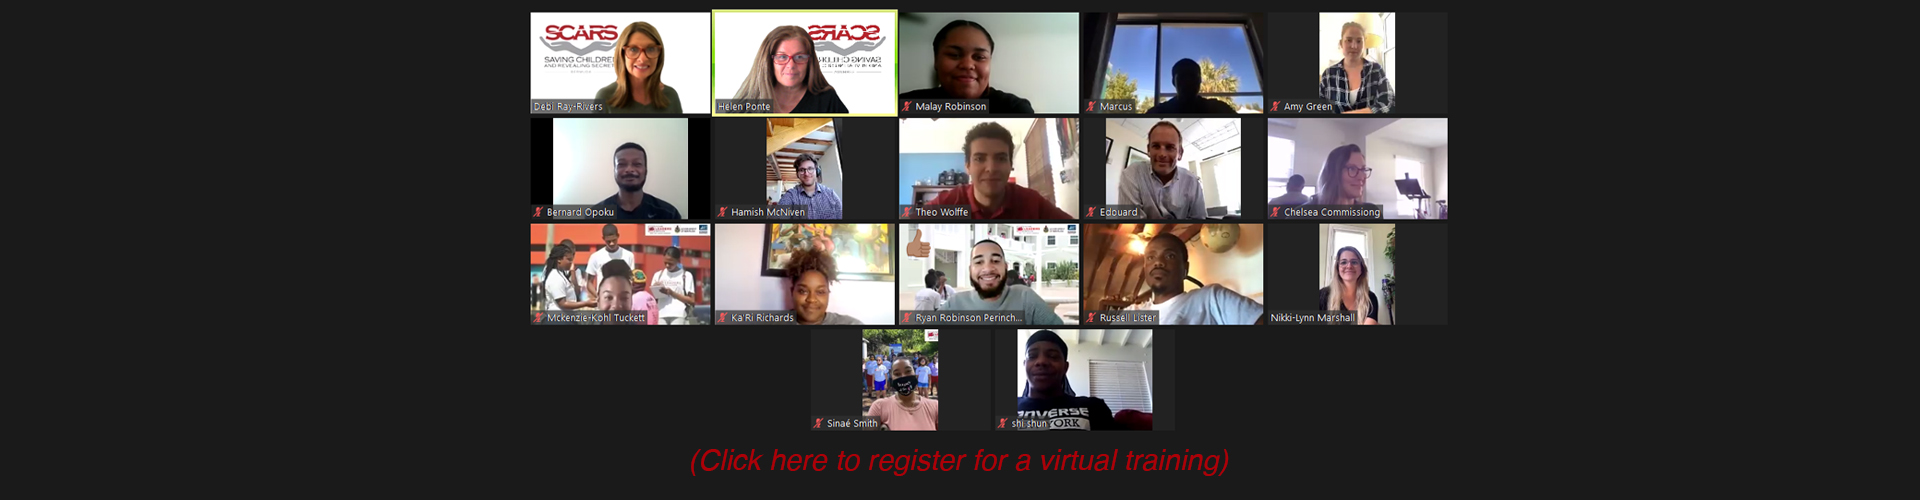 Register for a virtual training